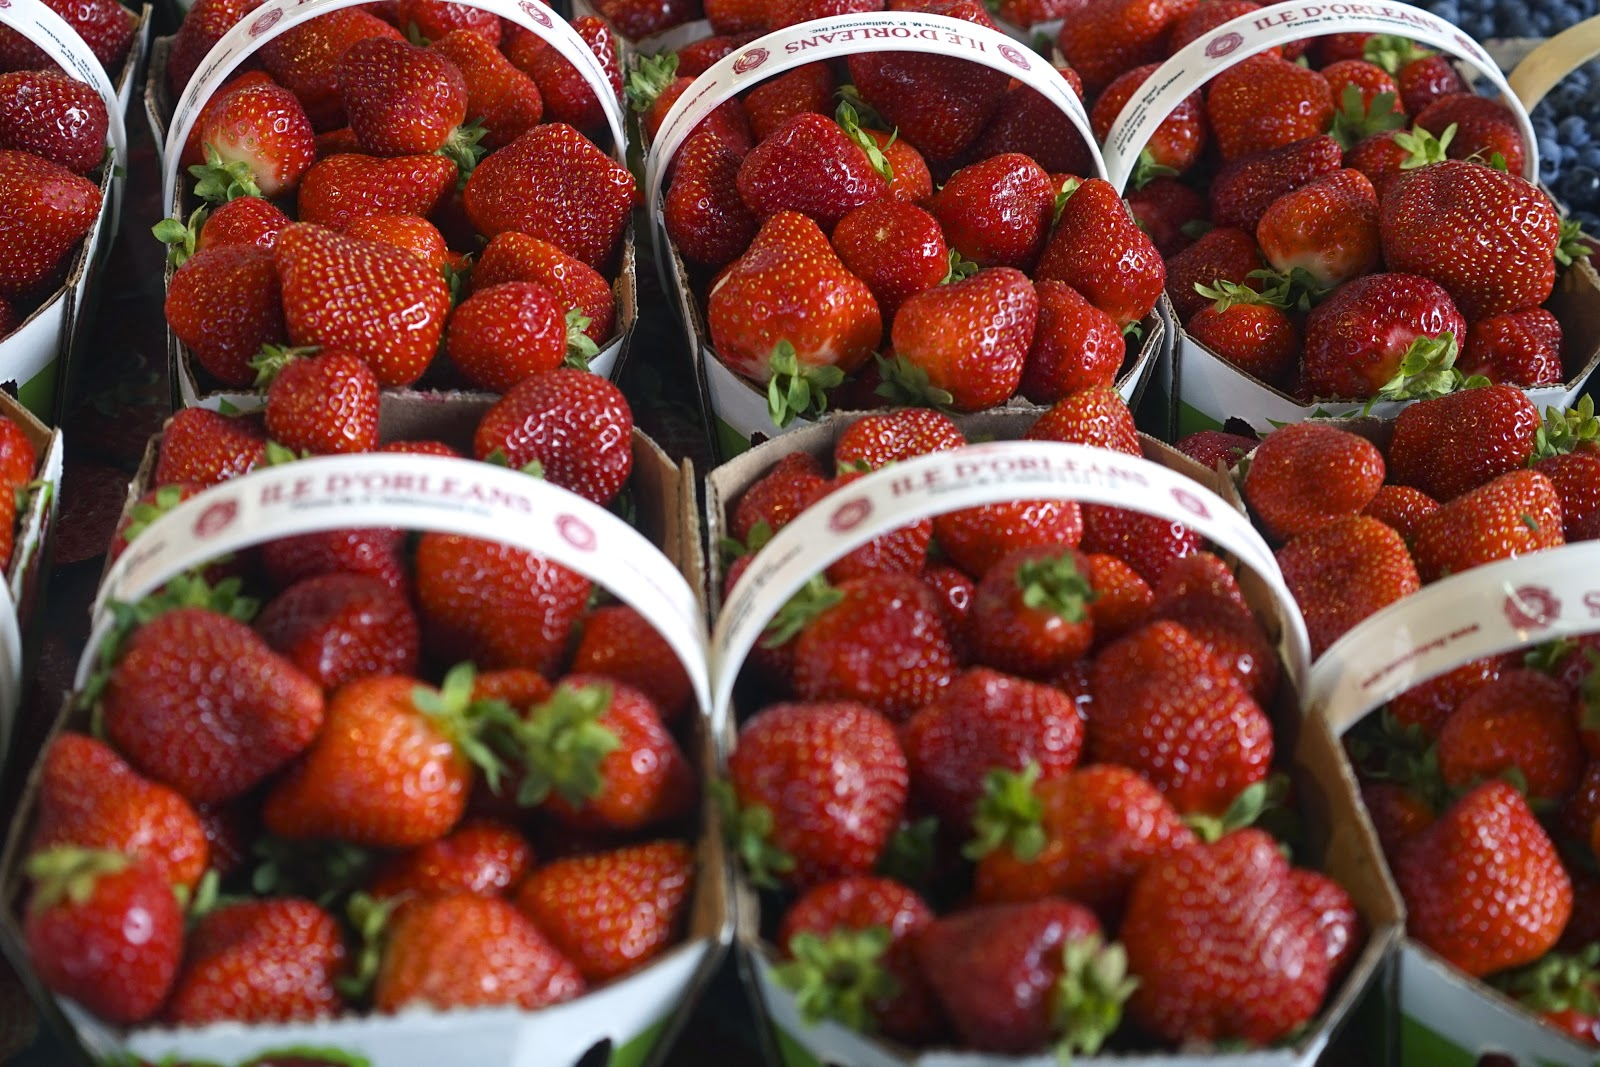 jean talon market strawberries